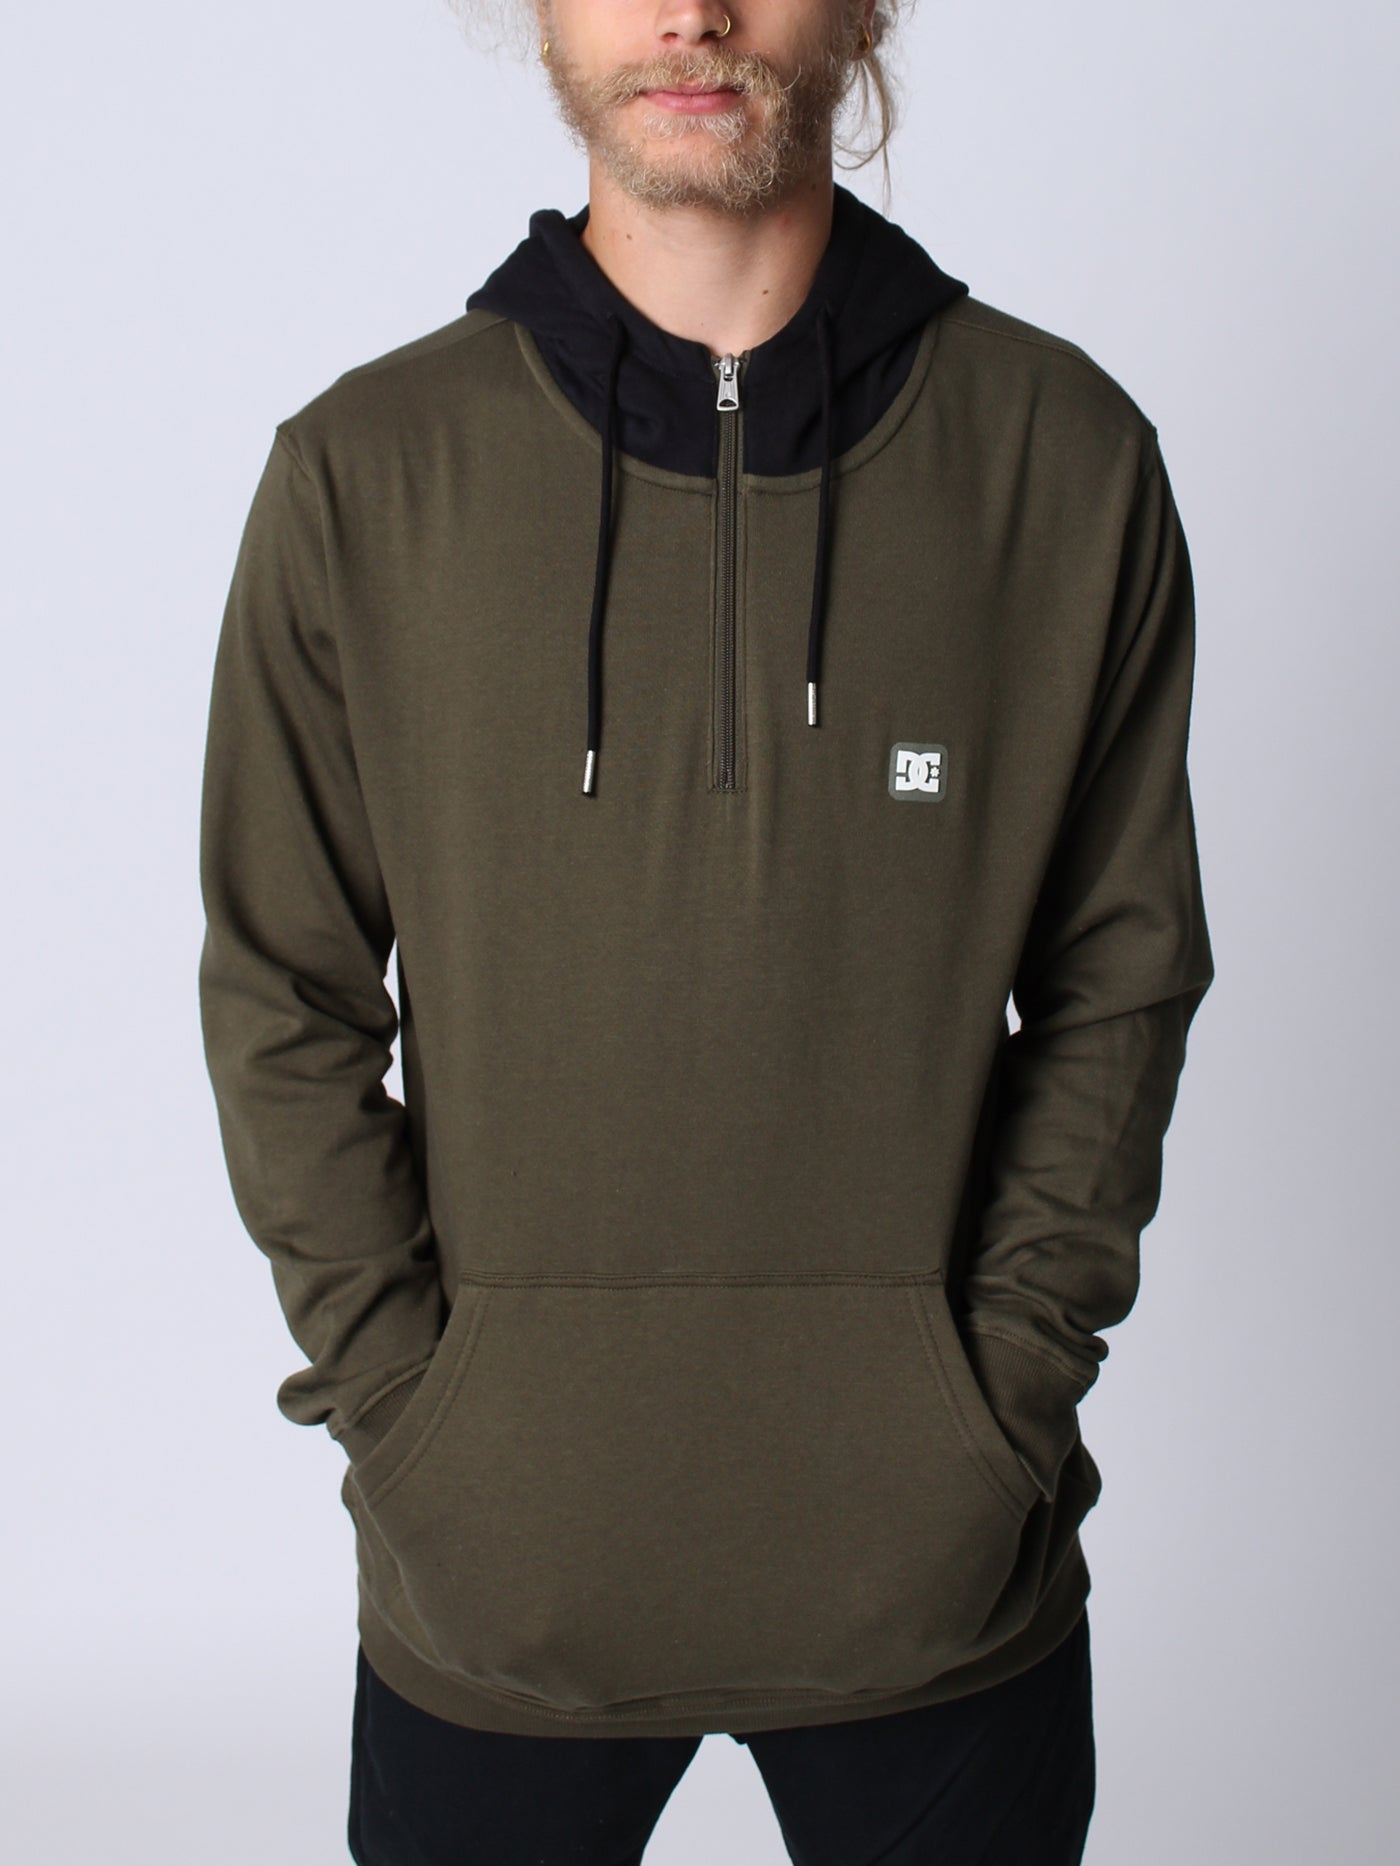 FATIGUE GREEN/BLK (XCCK)